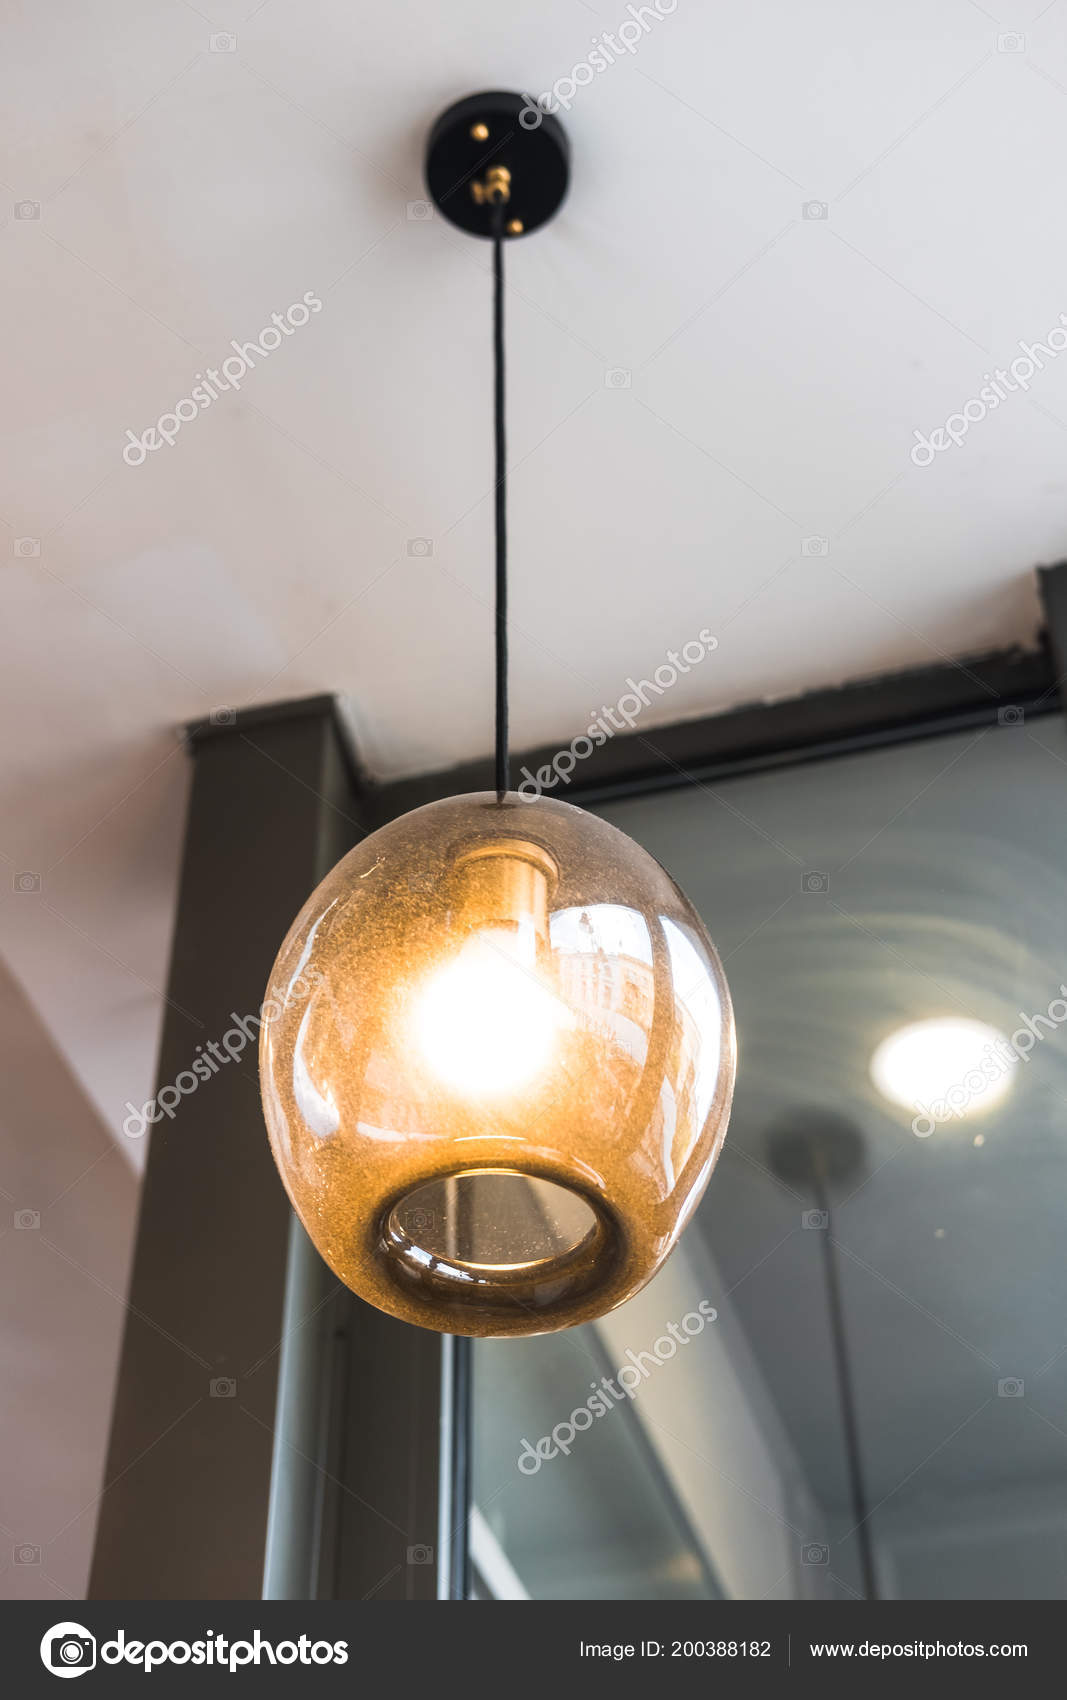 Glass Pendant Lighting Home Restaurant Coffee Shop Store Design Ideas Stock Photo C Julypi 200388182